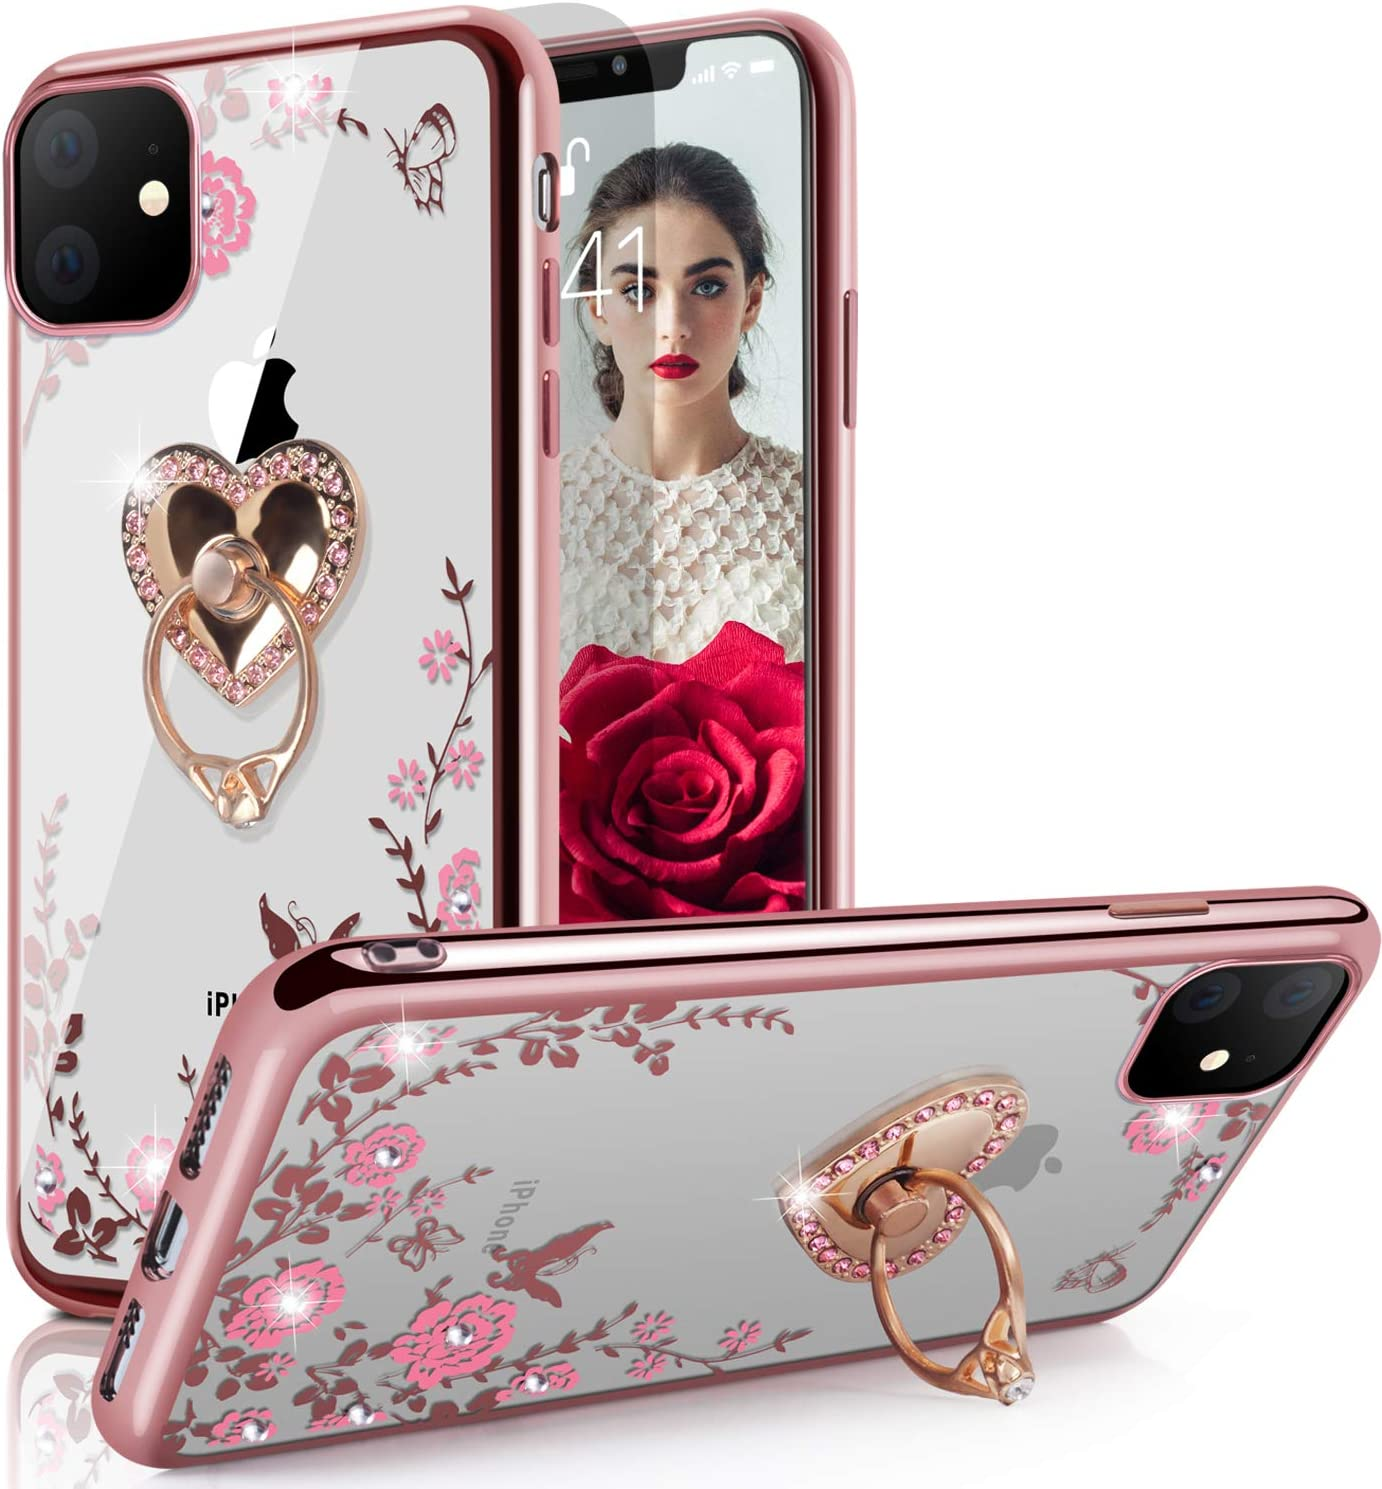 iPhone 11 Pro Case,WATACHE Glitter Sparkly Diamond Secret Garden Floral Butterfly Clear Back Soft TPU Case with Bling Ring Grip Holder Stand for Apple iPhone 11 Pro,Rose Gold